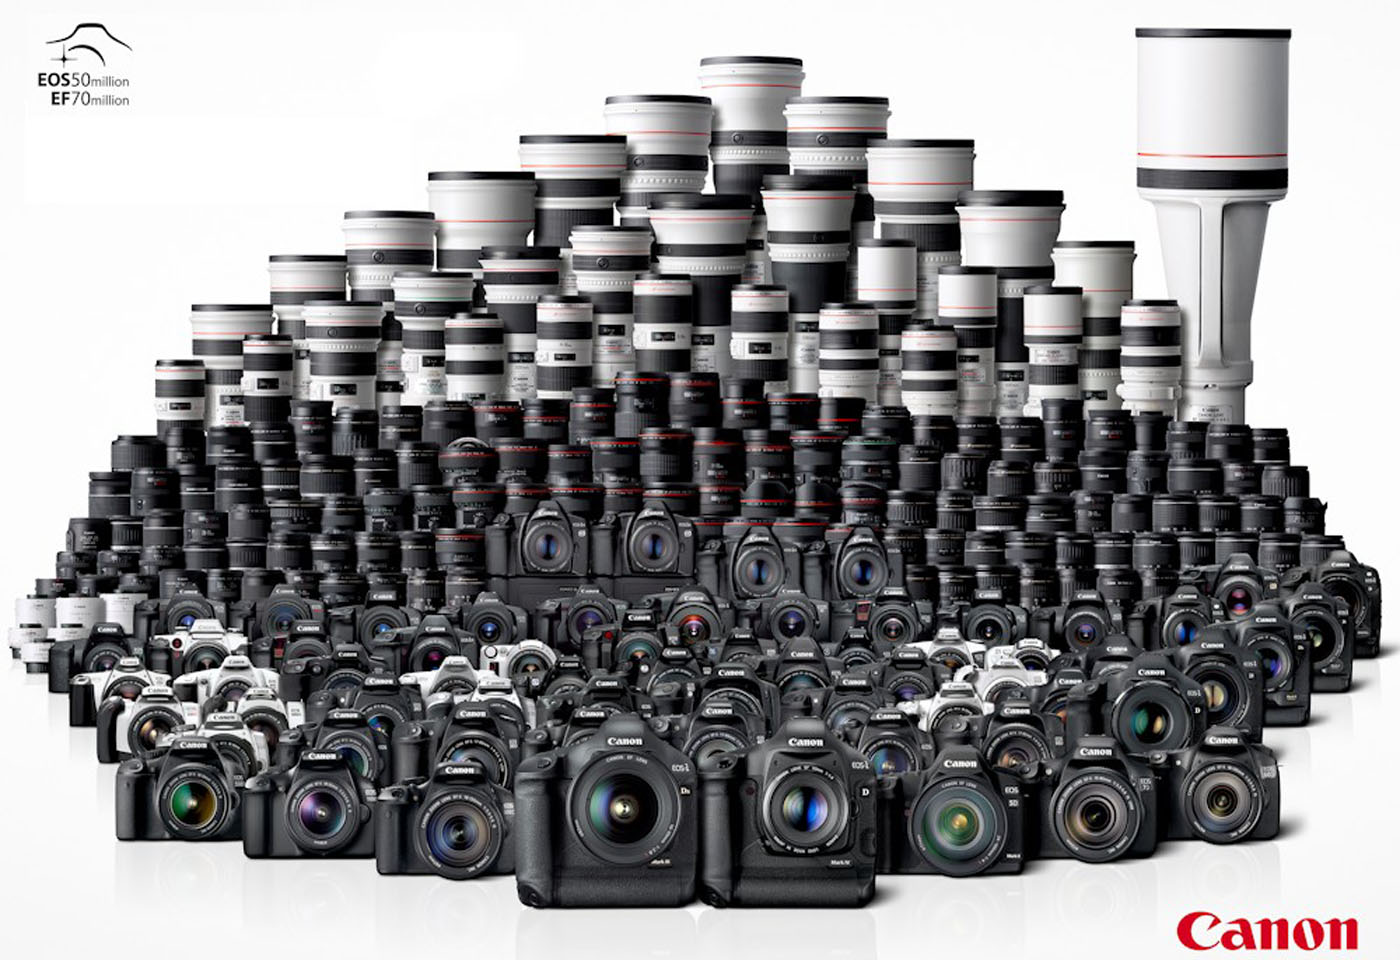 Image of Canon lens and cameras